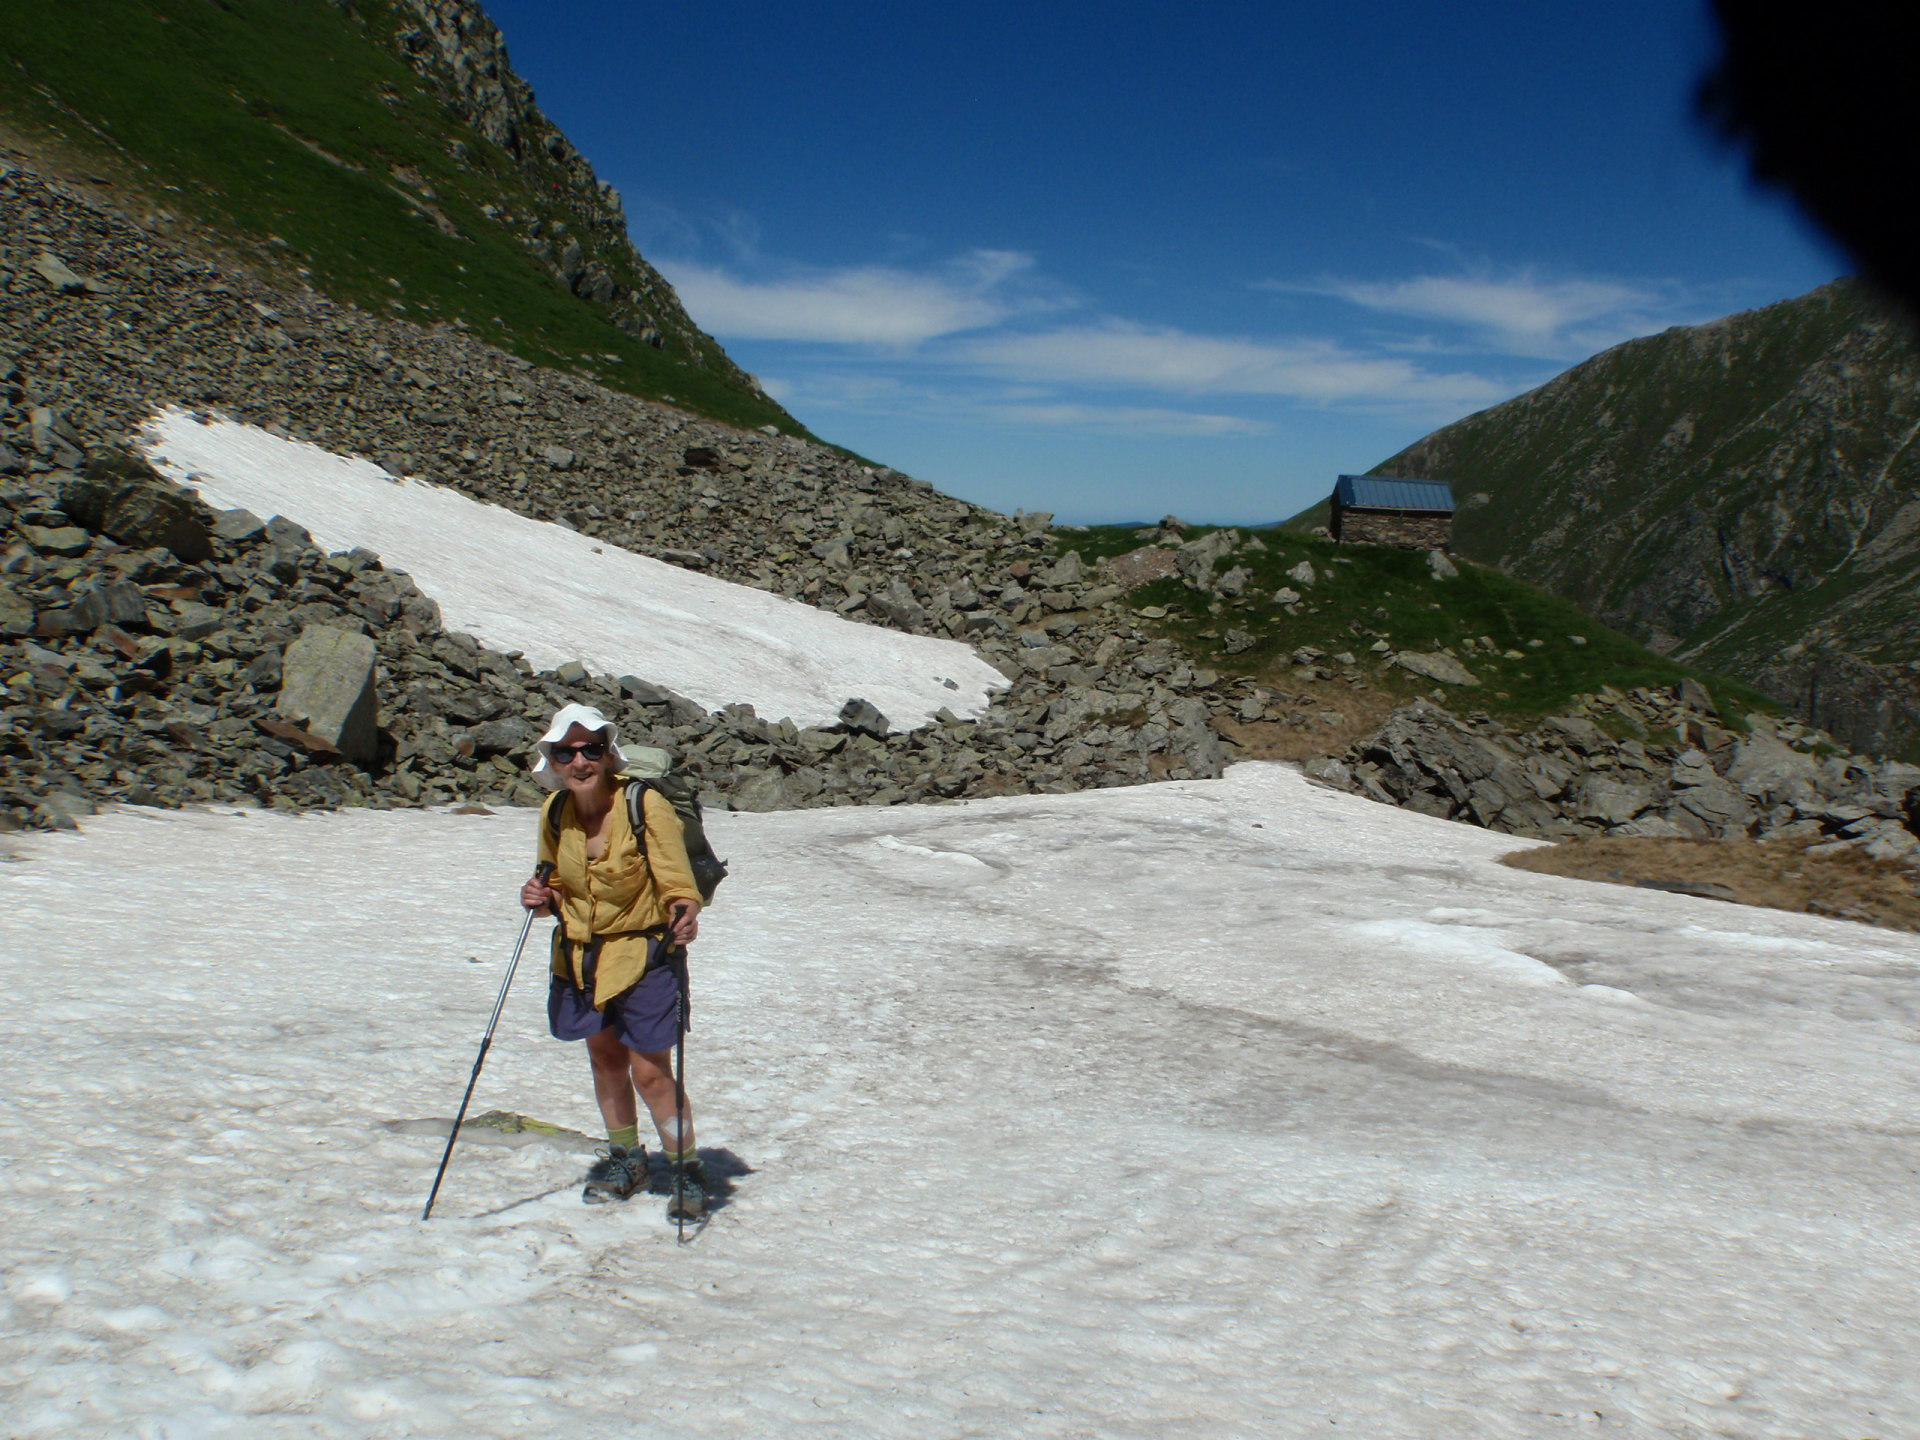 The magic mountain traverse of the Pyrenees: summer update